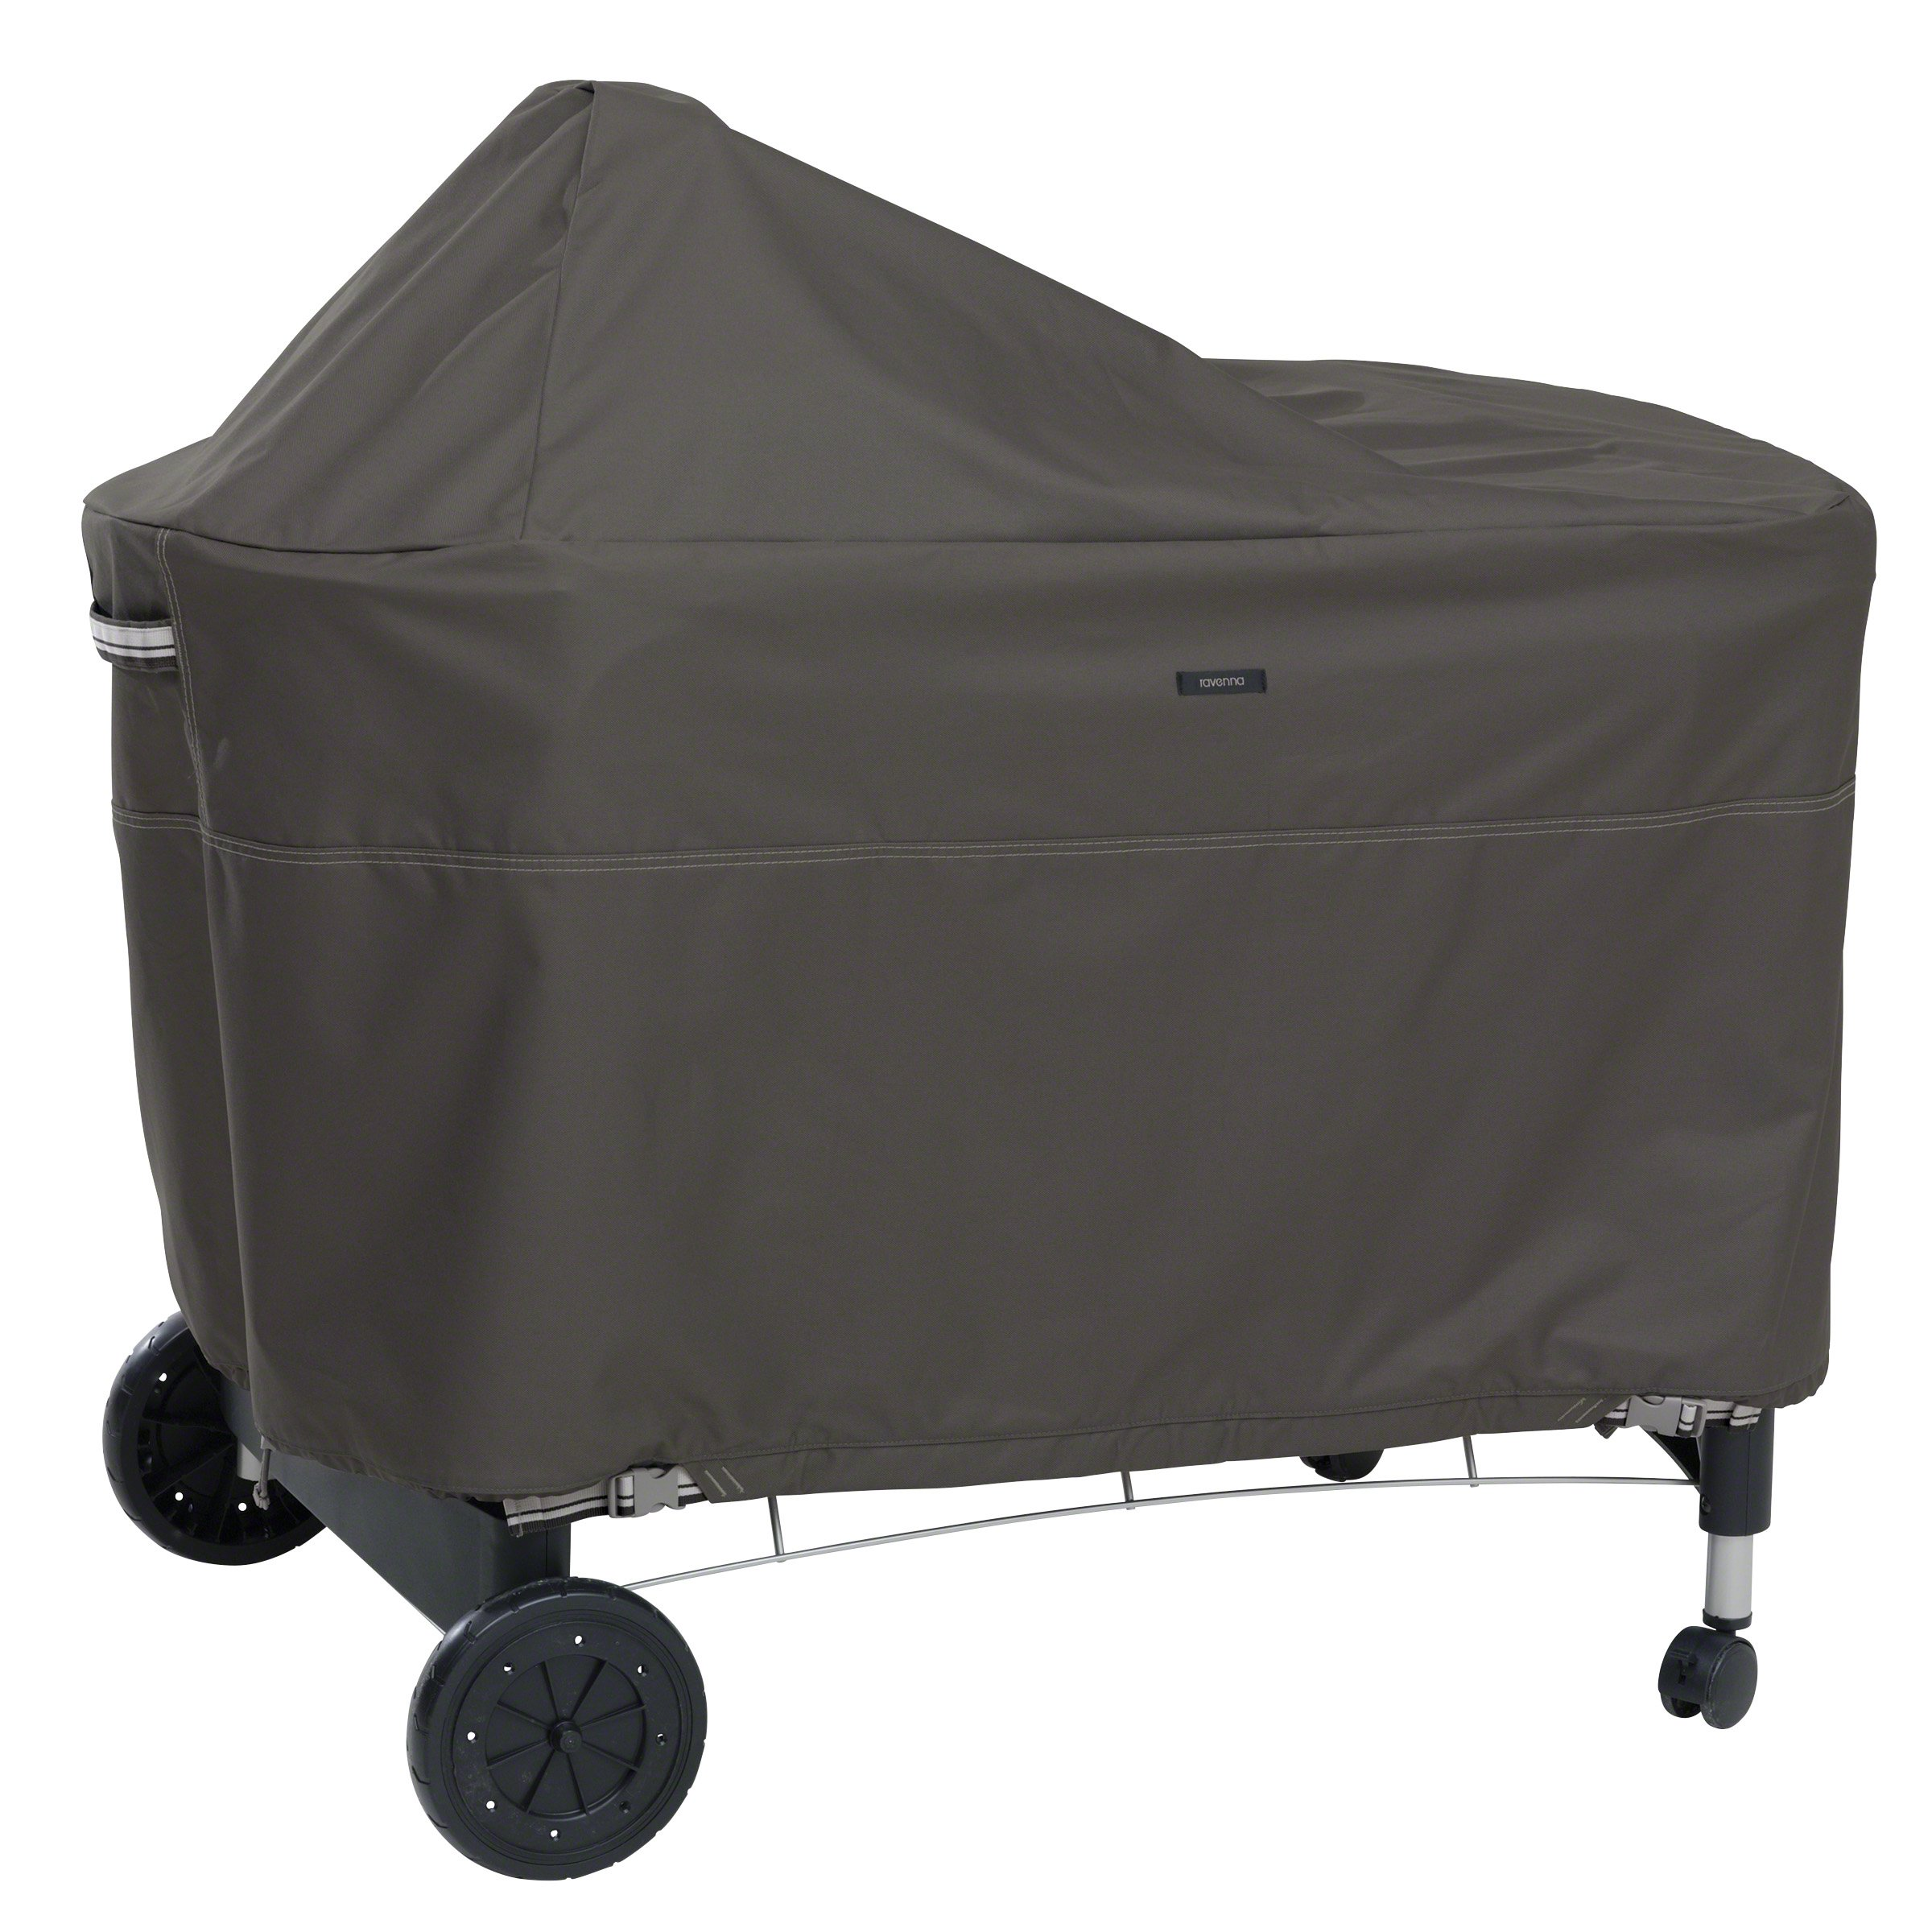 Classic Accessories Ravenna Grill Cover for The Weber Performer-Premium Outdoor Grill Cover with Durable and Water Resistant Fabric (55-421-015101-EC) product image